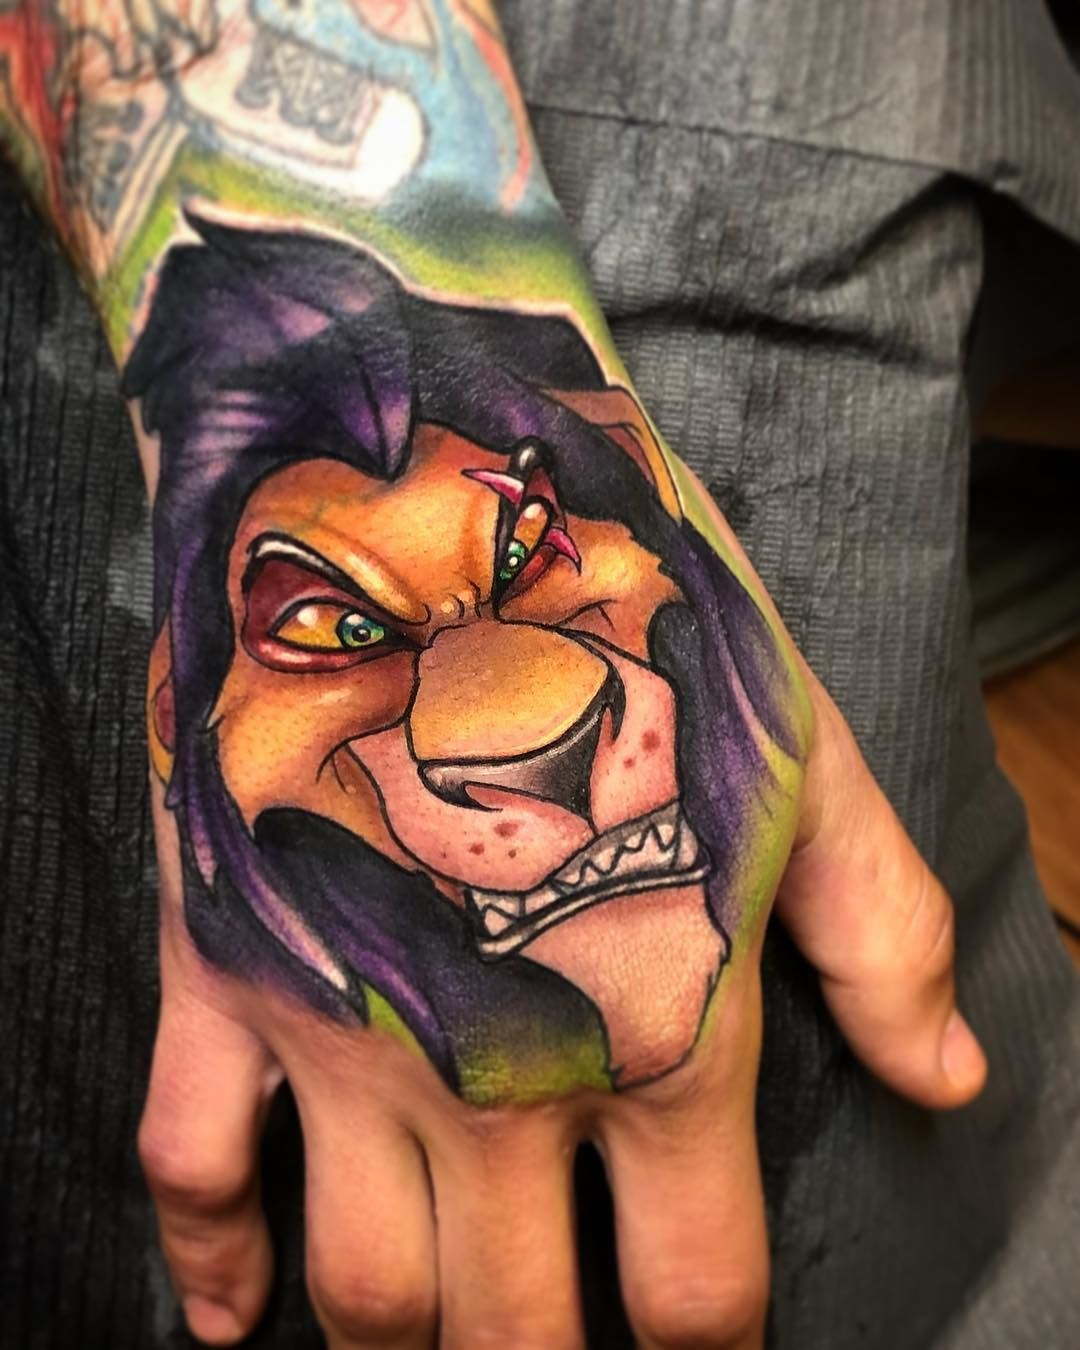 The Lion King Scar Disney Tattoo Josh Herman On Instagram Scar Hand Jobby Thanks Jorge Worldfamousink Protonpen Mdw Lion King Tattoo Tattoos Scar Tattoo